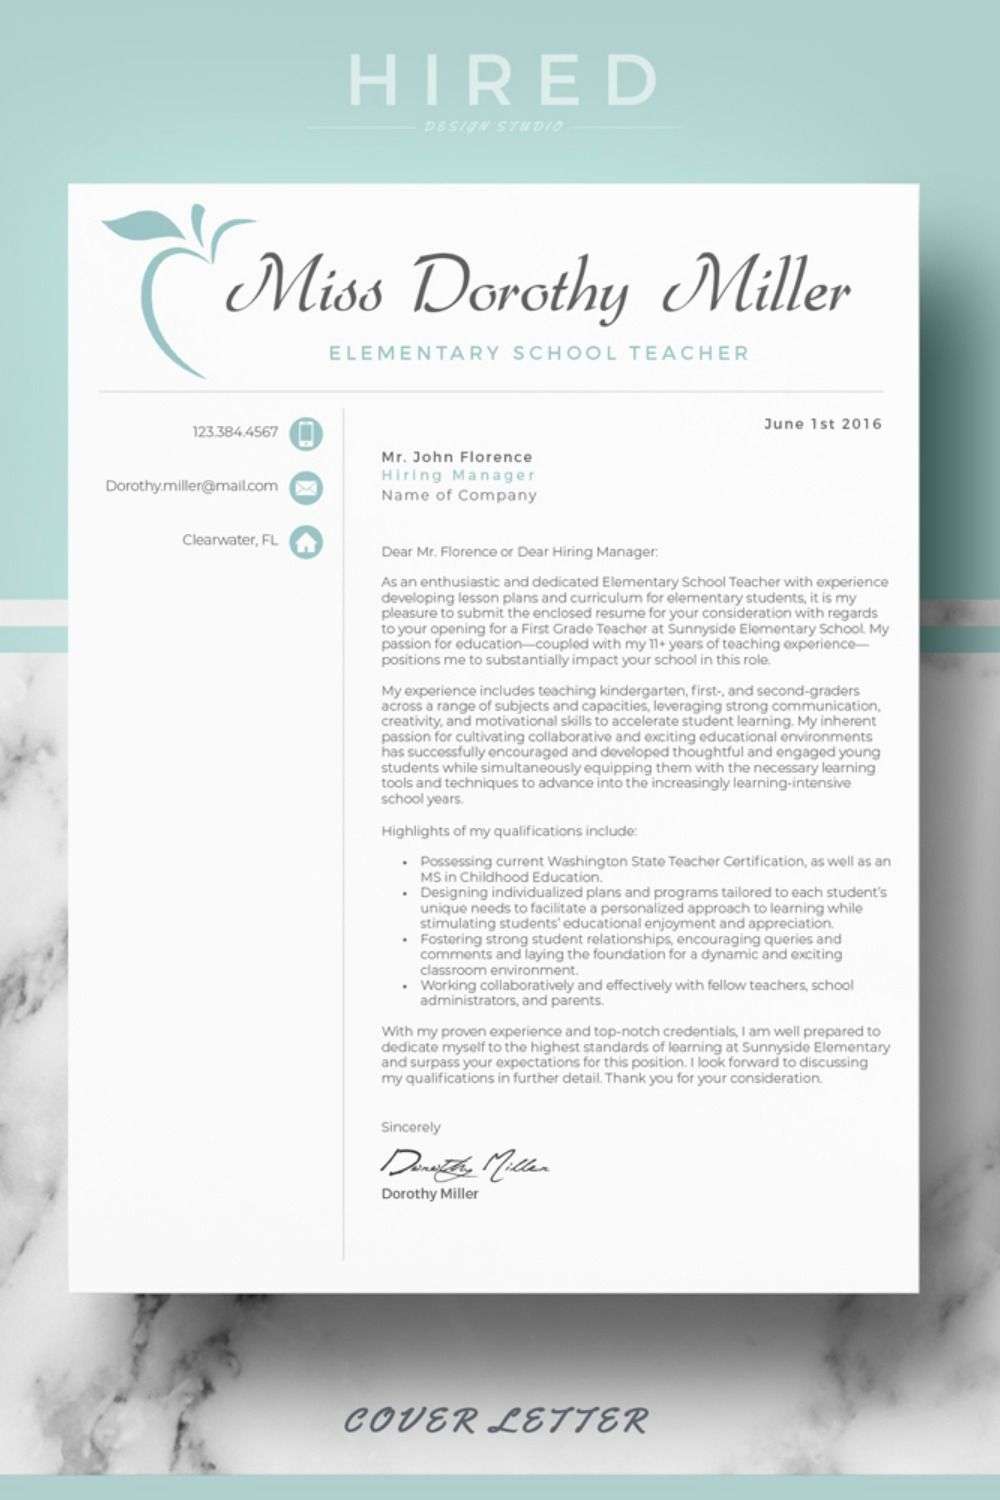 Email for Resume and Cover Letter Of Cover Letter format for Elementary Teacher Cv Resume Template Layout References Page